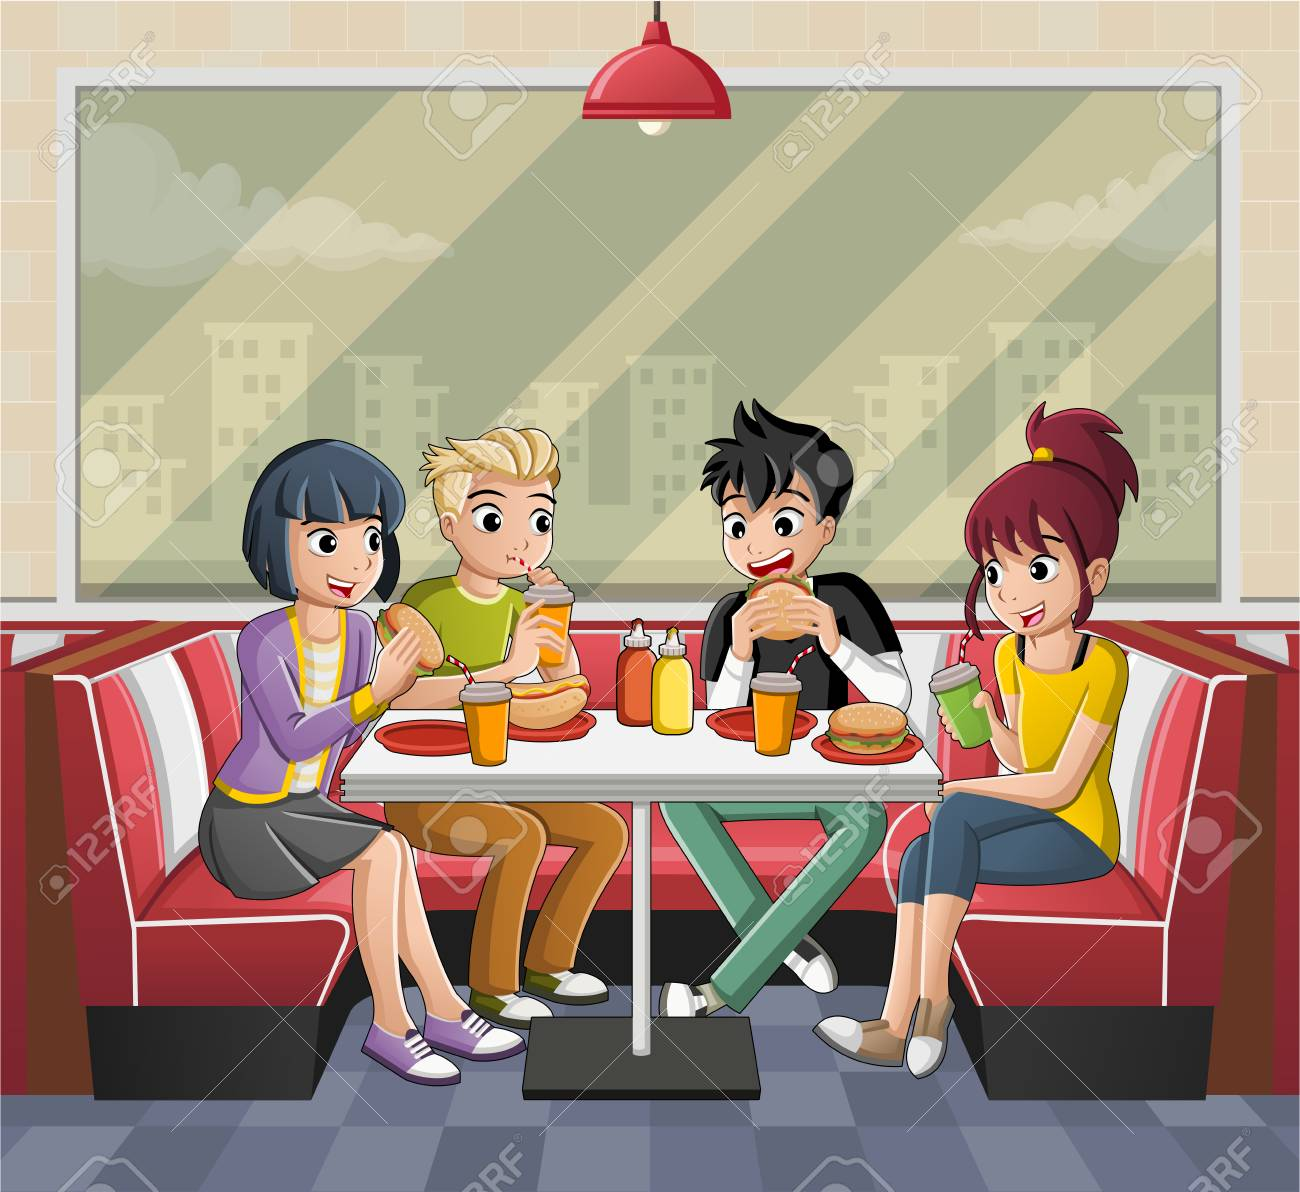 Group Of Cartoon Teenagers Eating Junk Food At Diner Table Royalty Free Cliparts Vectors And Stock Illustration Image 120256459